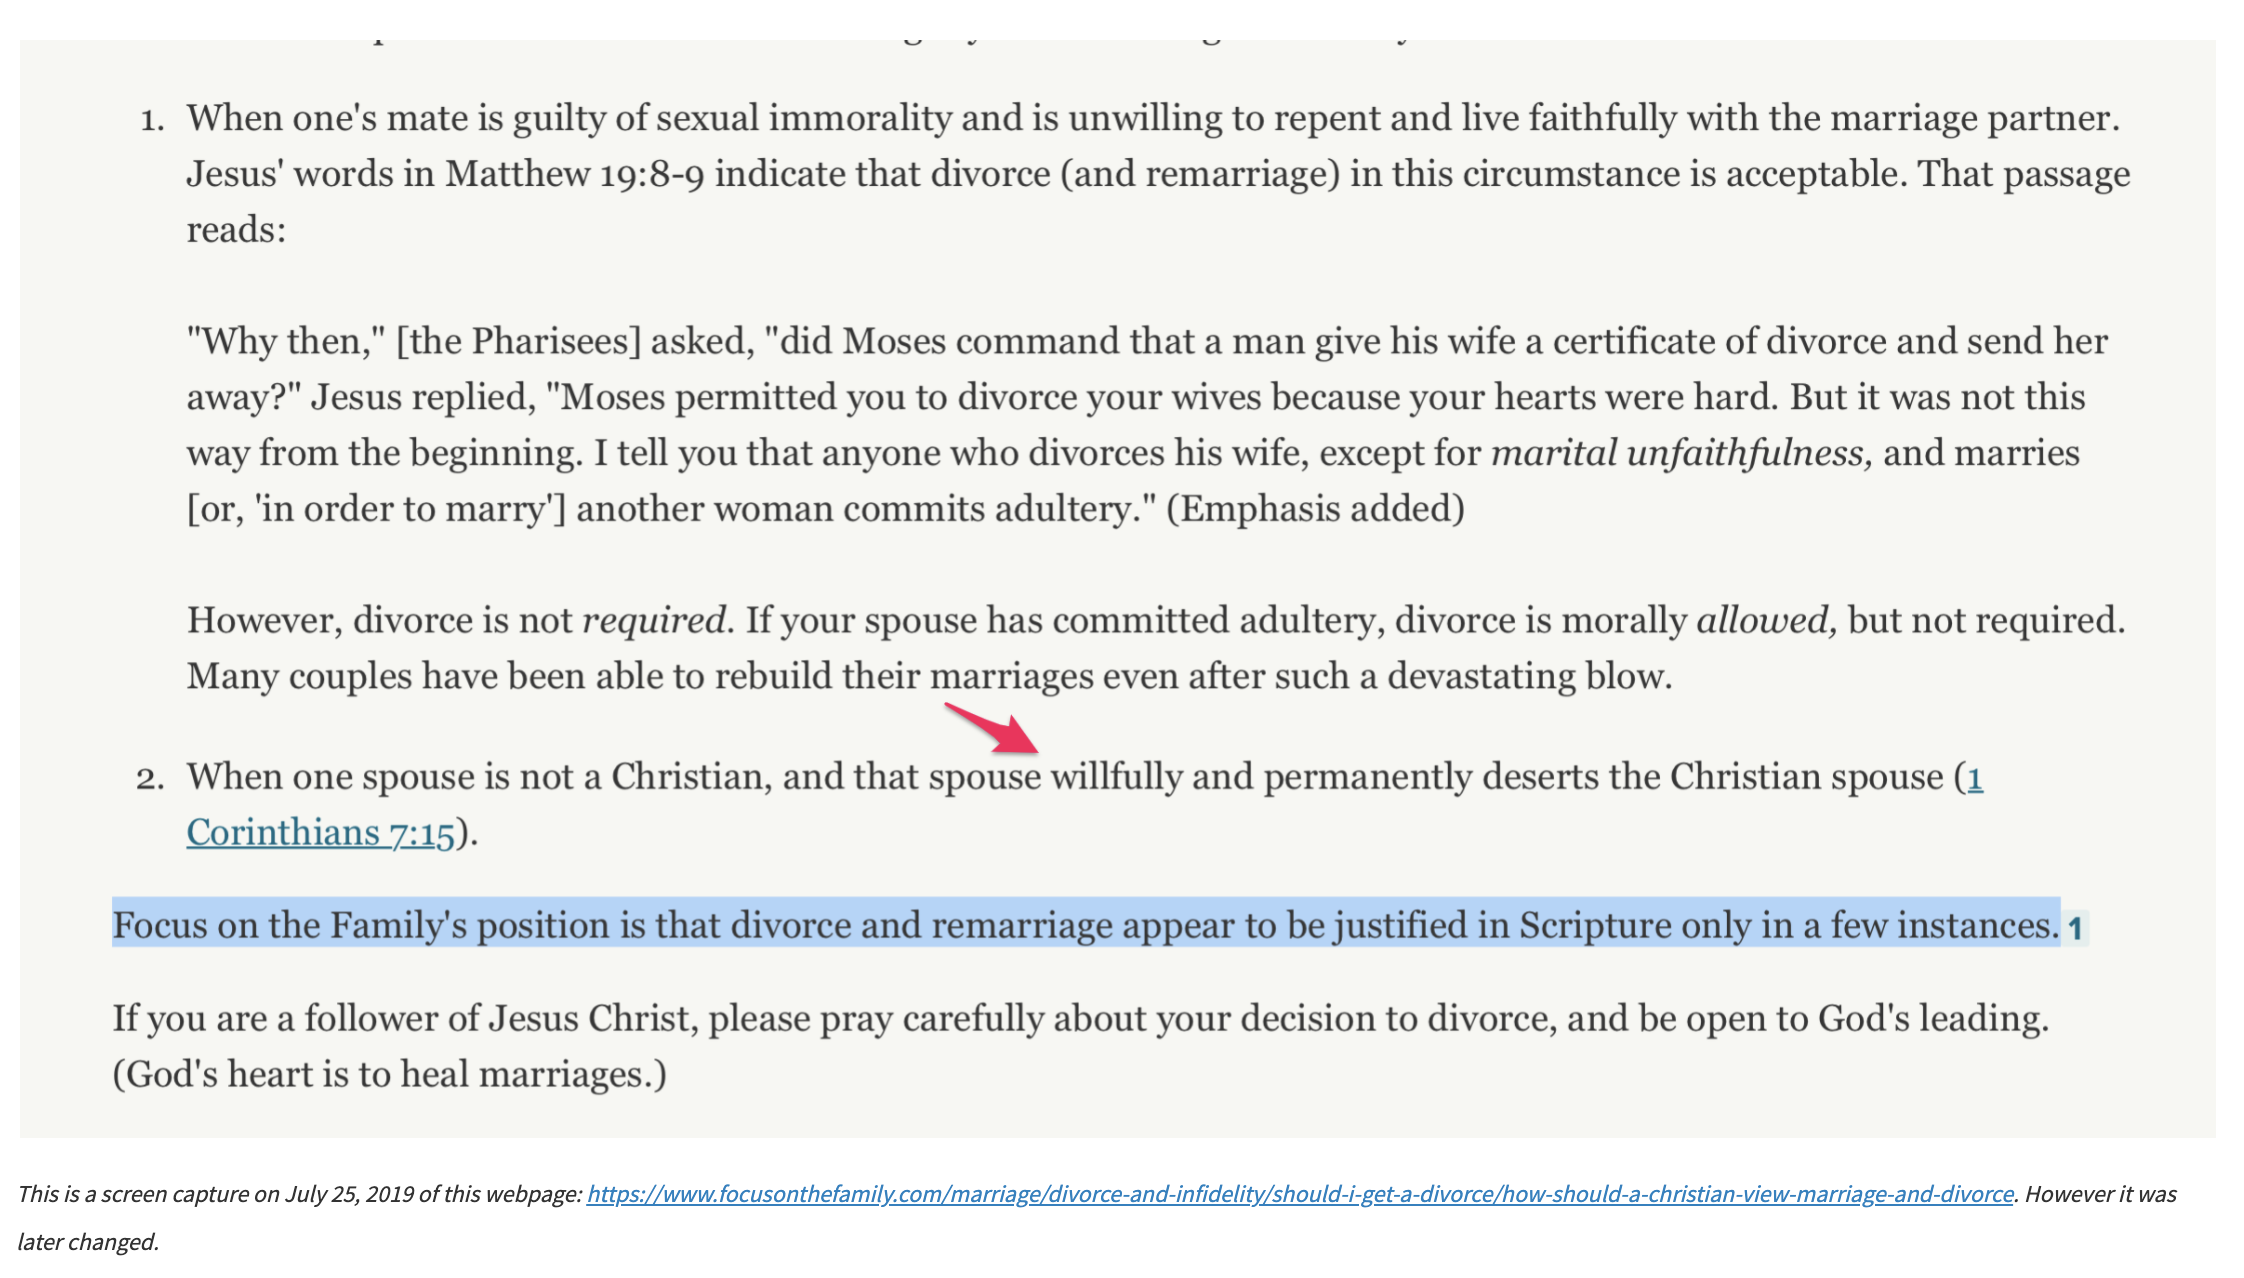 This is a screen capture on July 25, 2019 of this webpage: https://www.focusonthefamily.com/marriage/divorce-and-infidelity/should-i-get-a-divorce/how-should-a-christian-view-marriage-and-divorce. However it was later changed.